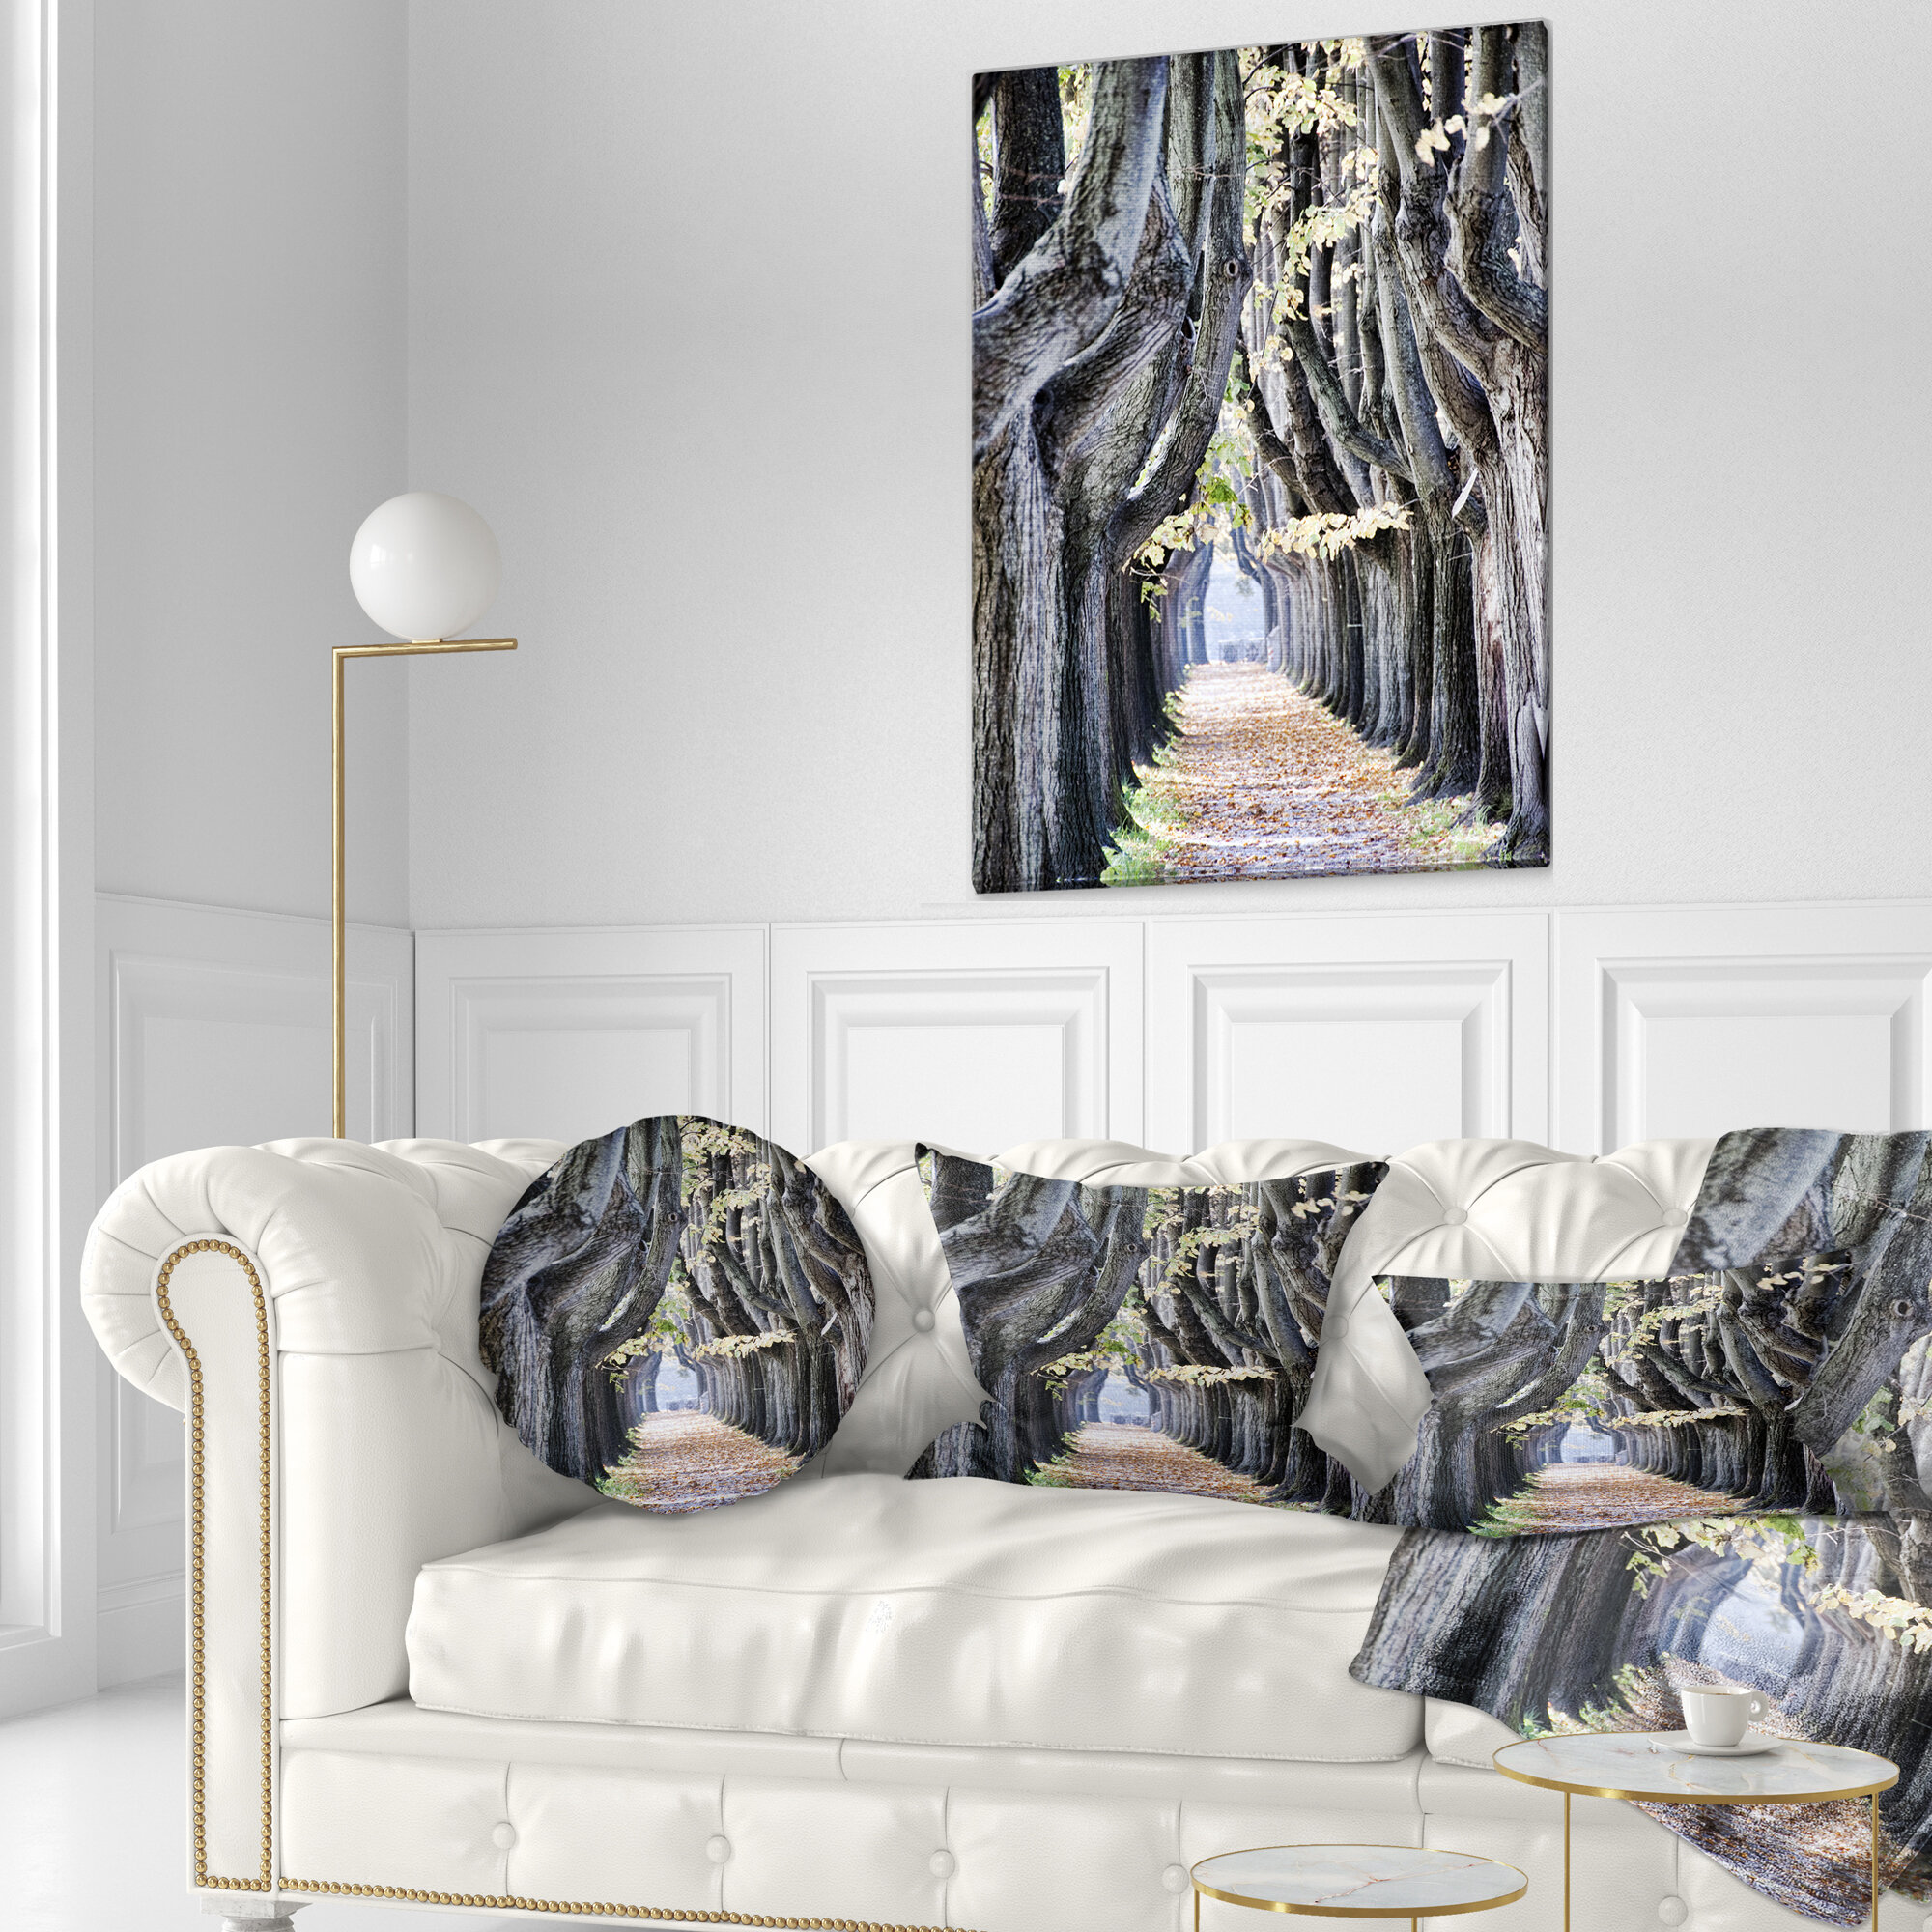 East Urban Home Landscape Photo Tree Outside Lucca Italy Lumbar Pillow Wayfair